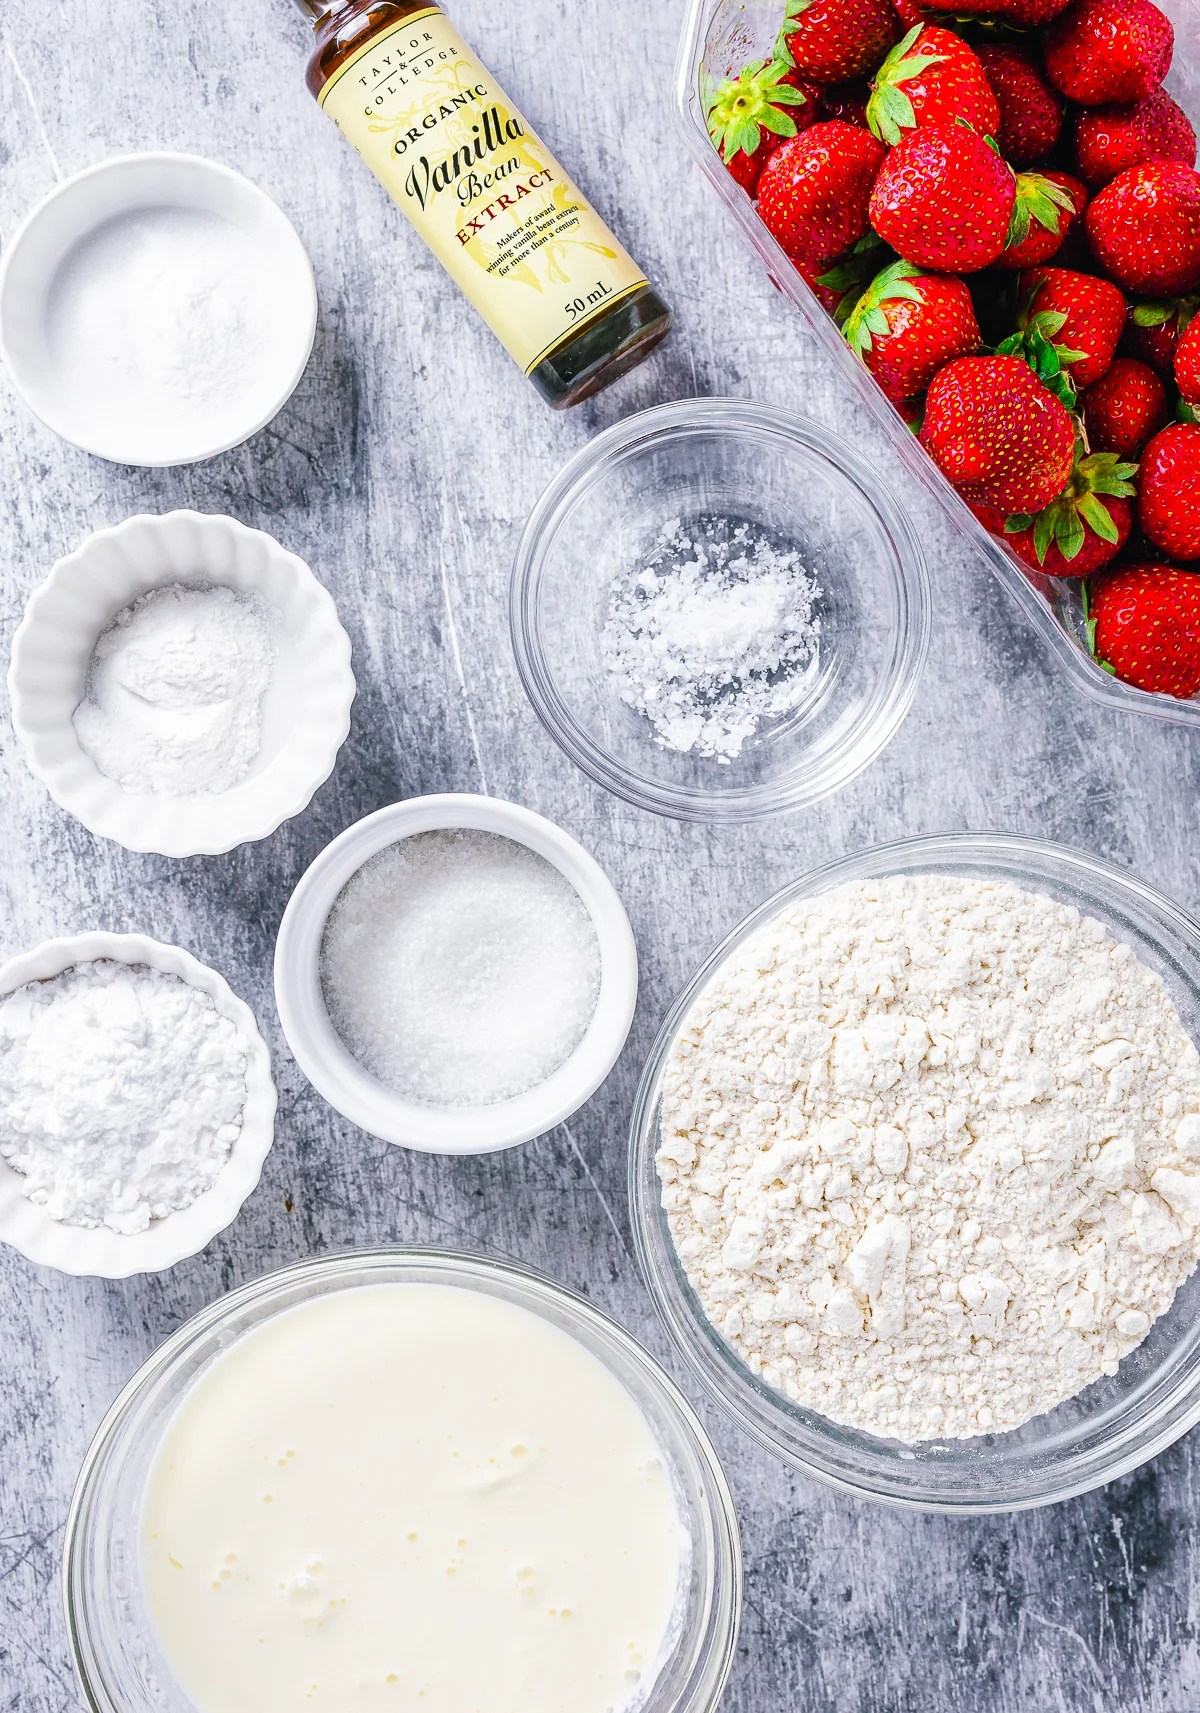 Ingredients needed to make a Strawberry Shortcake Recipe